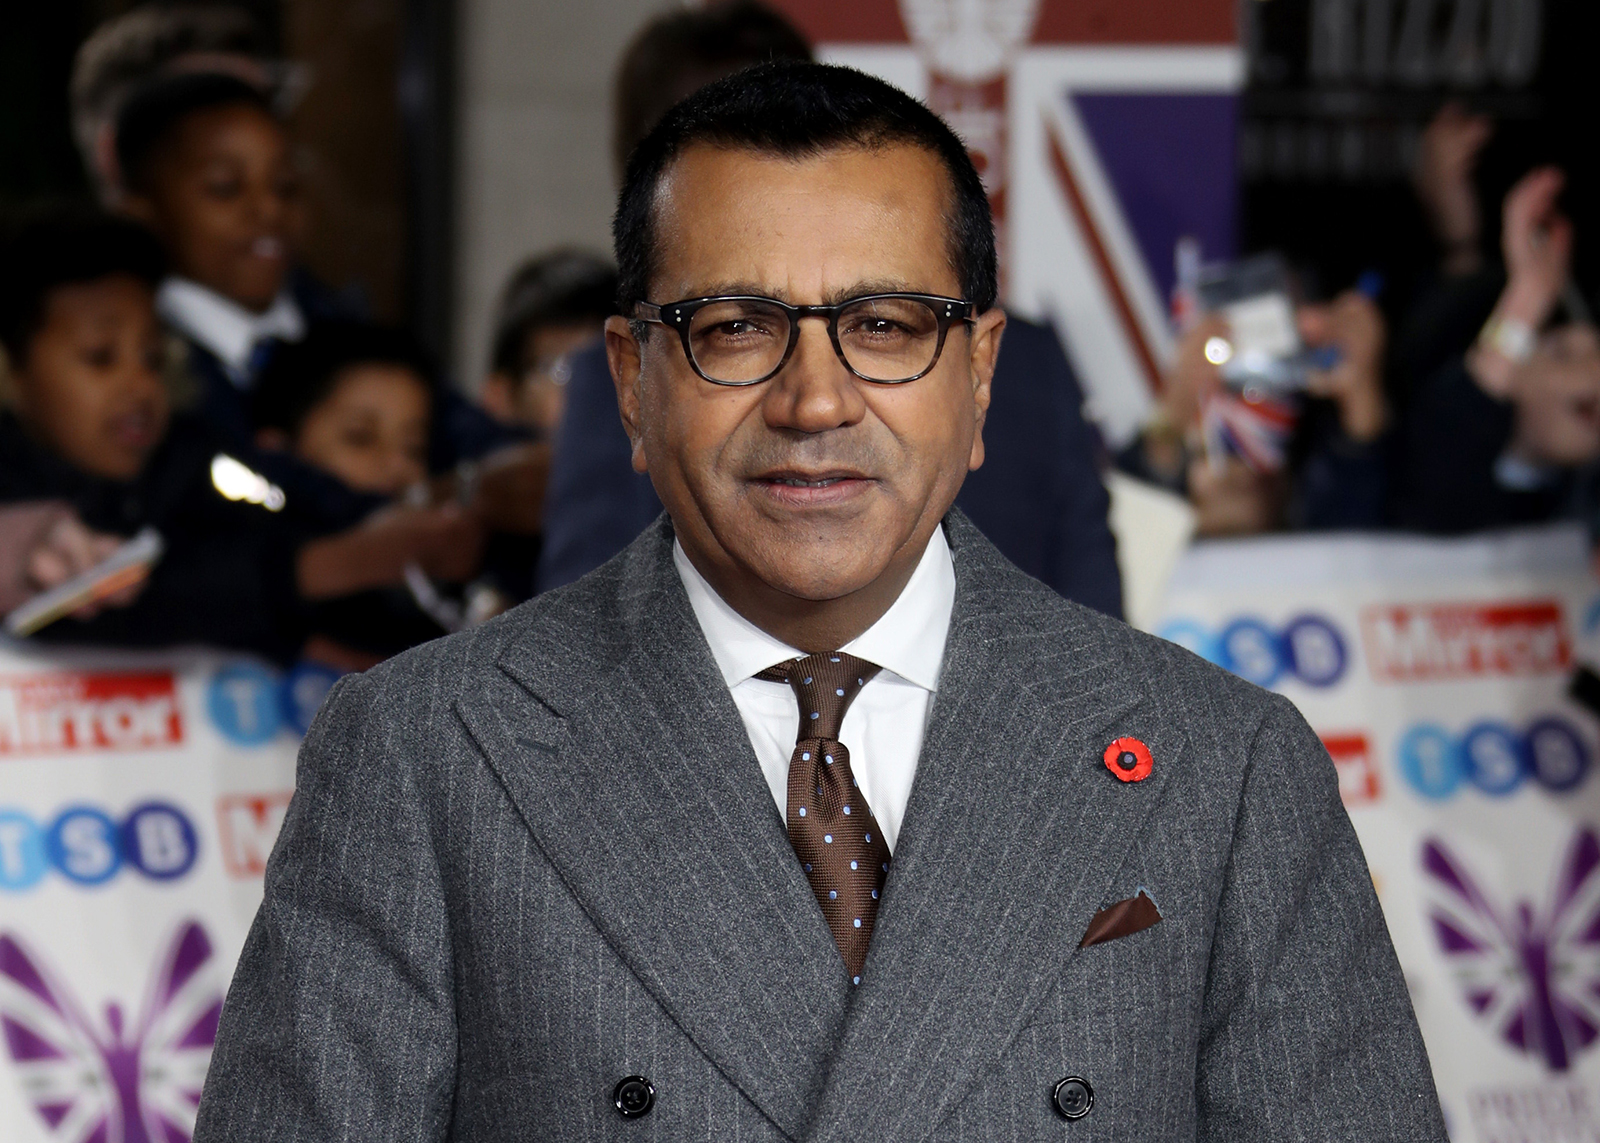 Martin Bashir arriving for the Pride of Britain Awards held at the The Grosvenor House Hotel, London, on October 28, 2019.